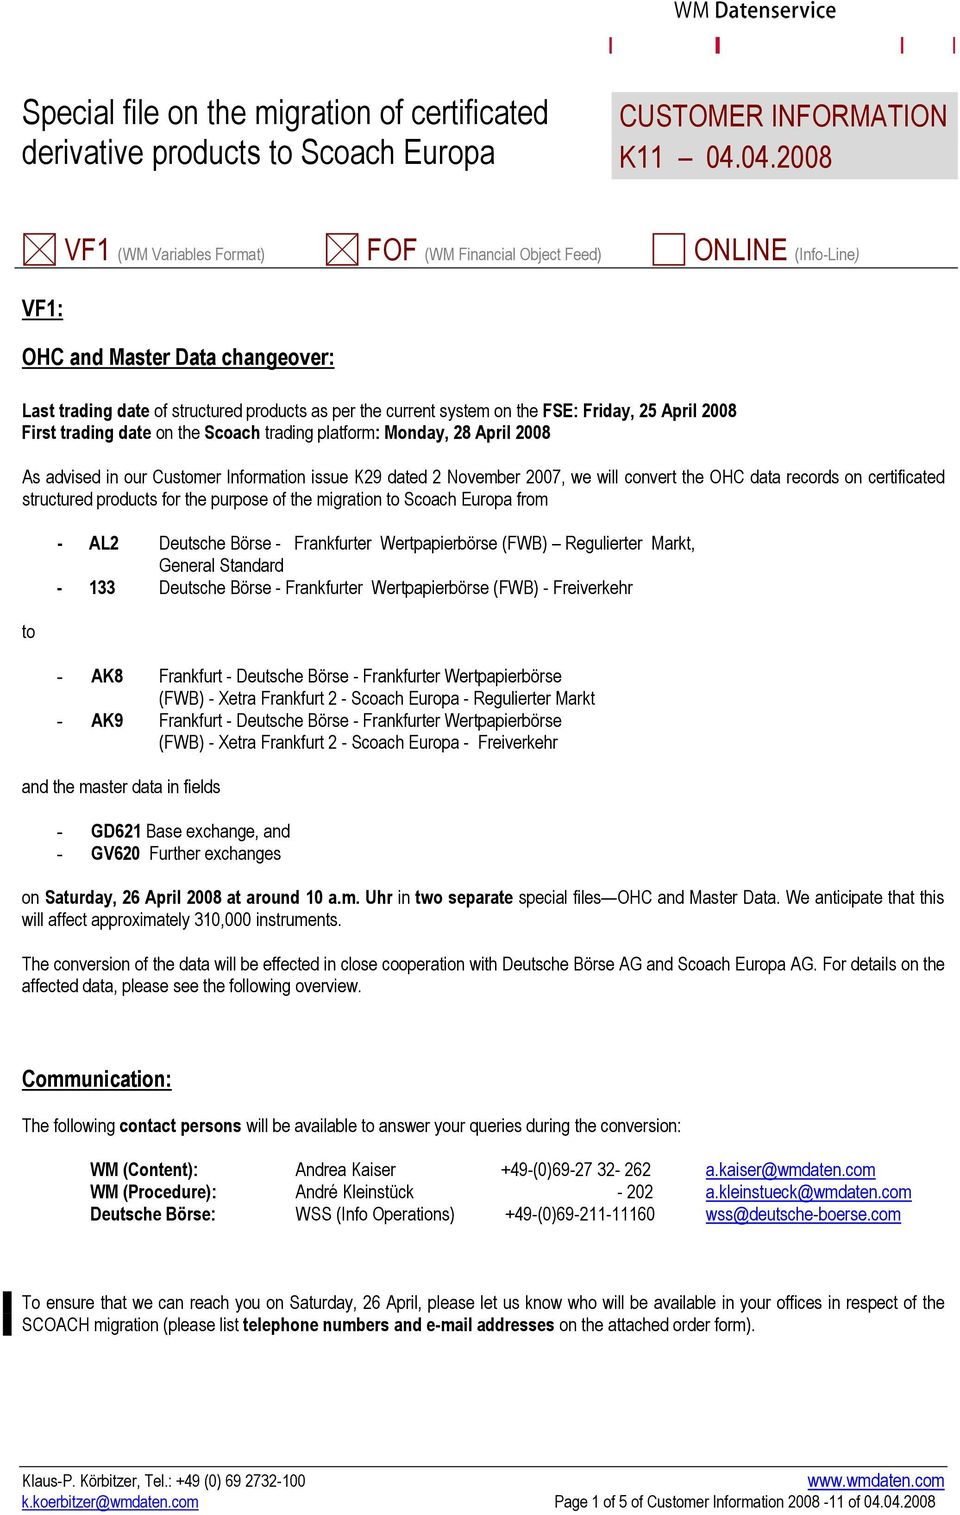 Friday, 25 April 2008 First trading date on the Scoach trading platform: Monday, 28 April 2008 As advised in our Customer Information issue K29 dated 2 November 2007, we will convert the OHC data